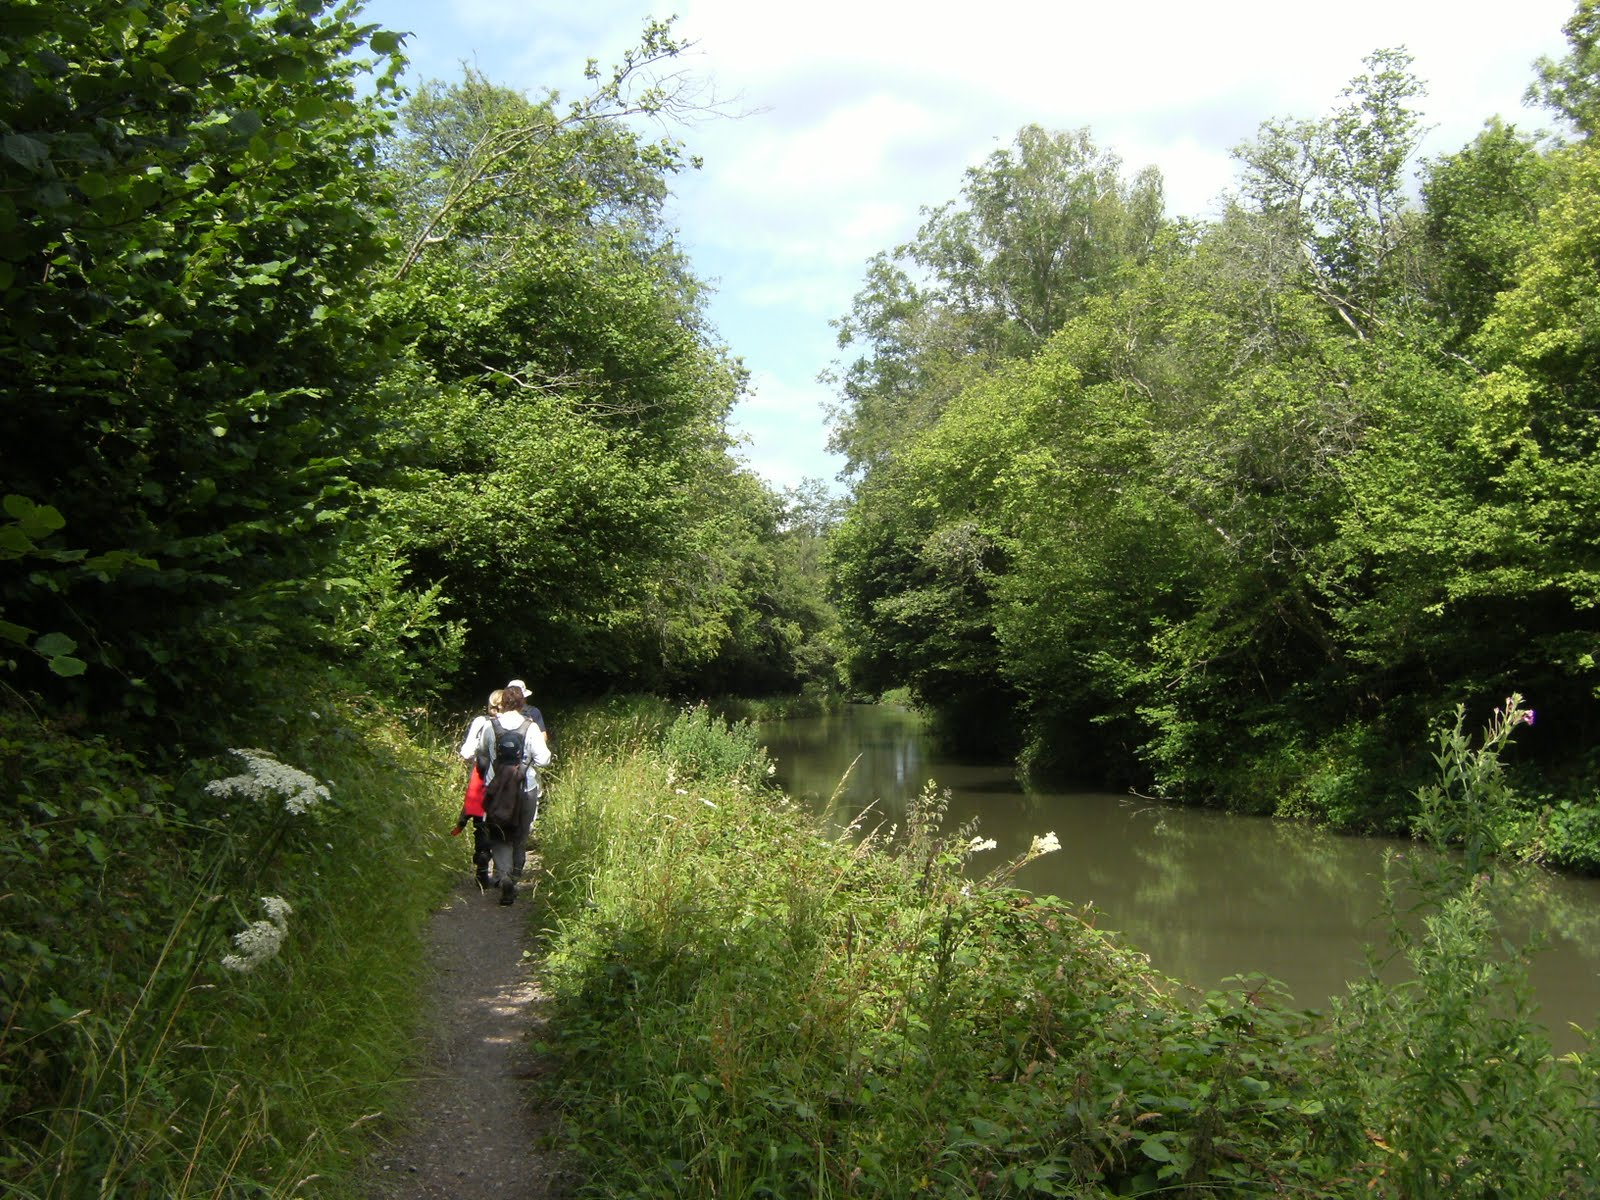 DSCF8776 Along the Basingstoke Canal